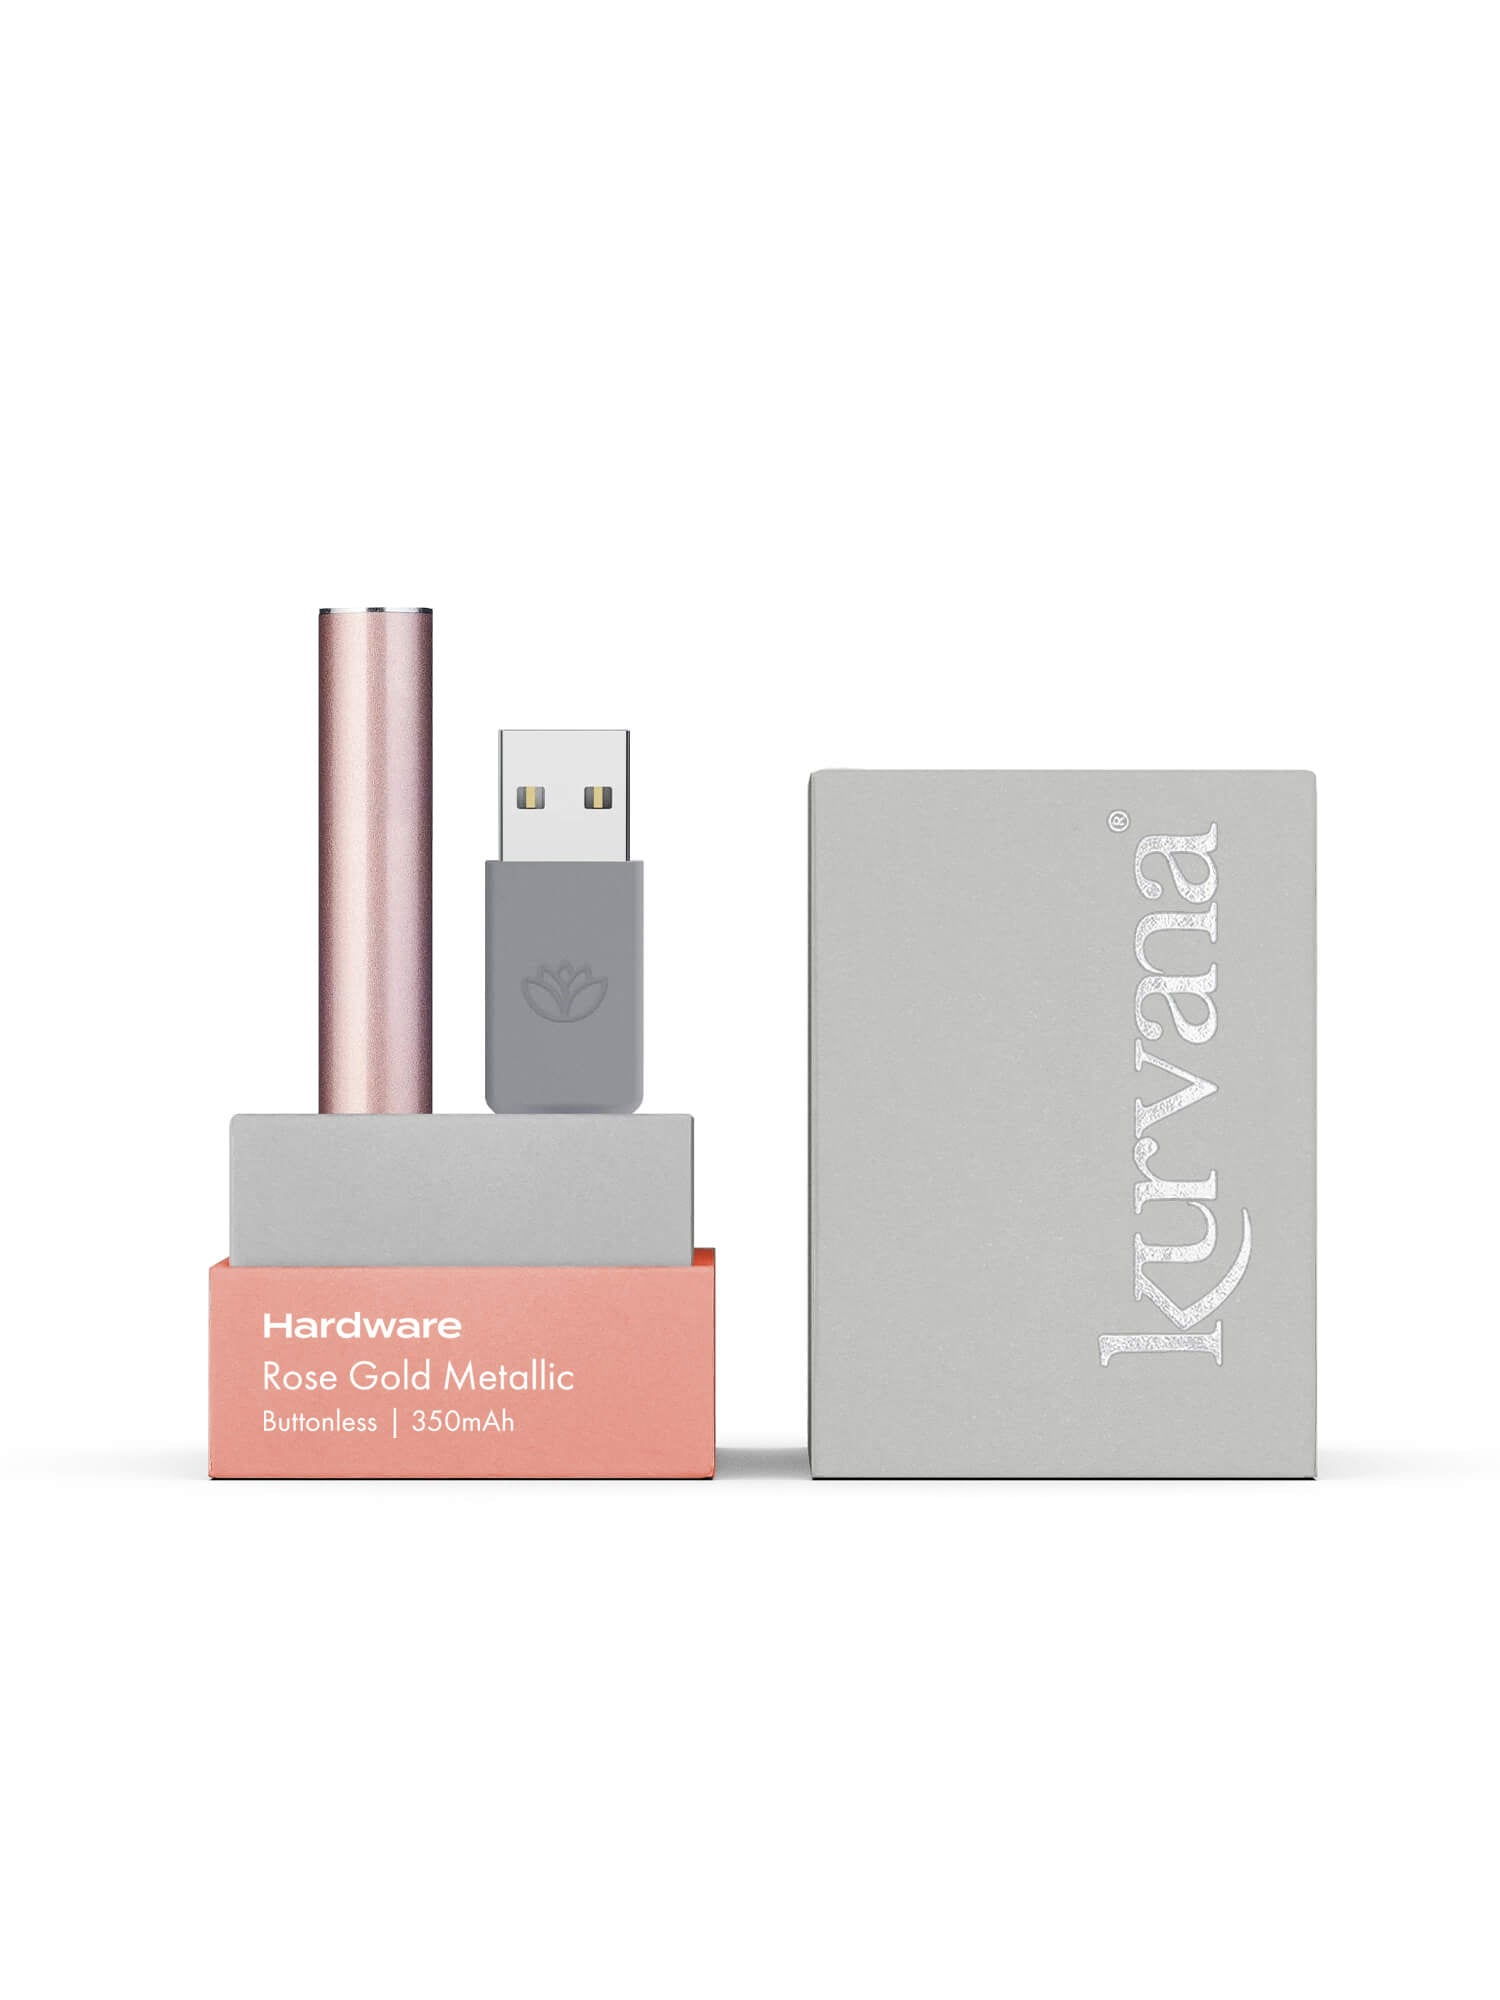 Rose Gold Metallic  —  Slim Buttonless Battery - KurvanaCBD